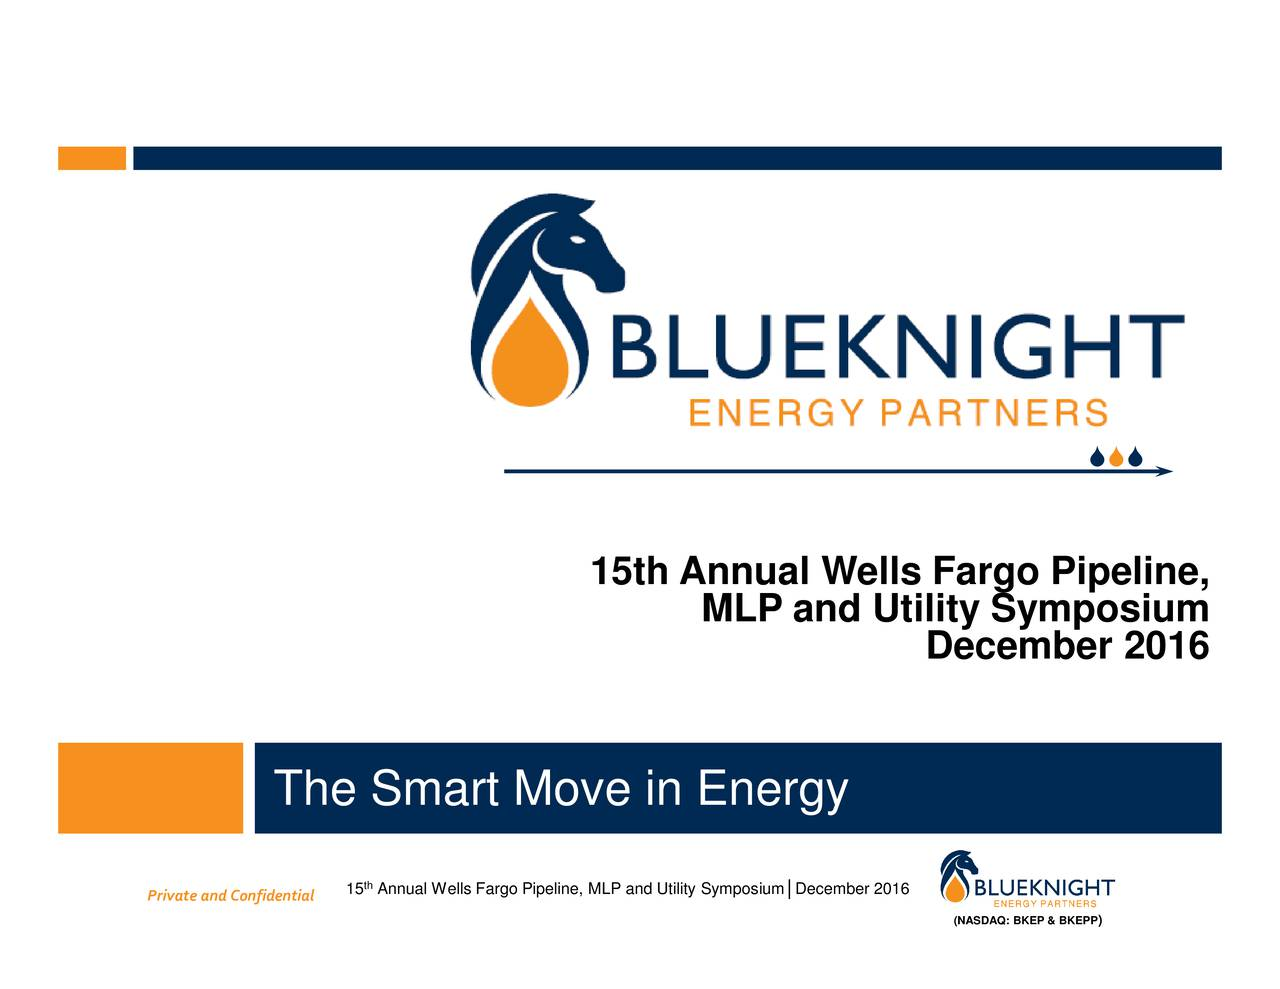 ) (NASDAQ: BKEP & BKEPP December 2016 December 2016 ium MLP and Utility Symposium 15th Annual Wells Fargo Pipeline, Annual Wells Fargo Pipeline, MLP and Utility Sympos th 15 The Smart Move in Energy Private and Confidential